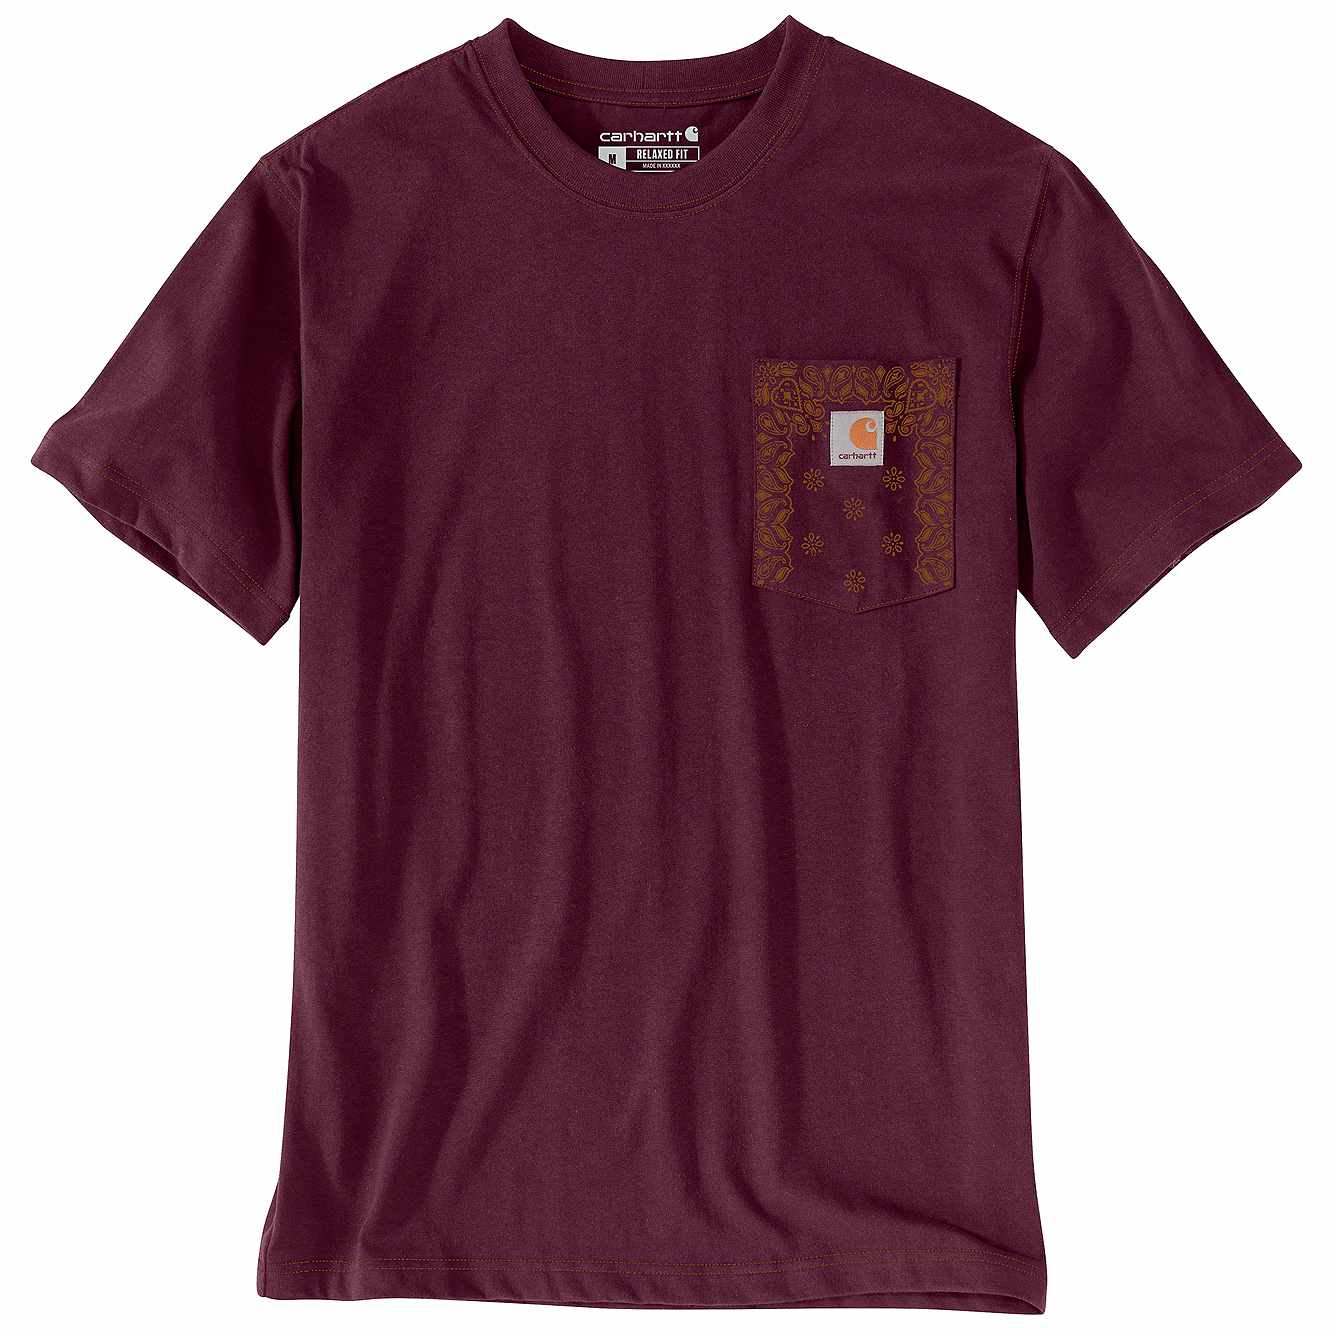 Picture of Relaxed Fit Heavyweight Short-Sleeve Pocket Print T-Shirt in Port